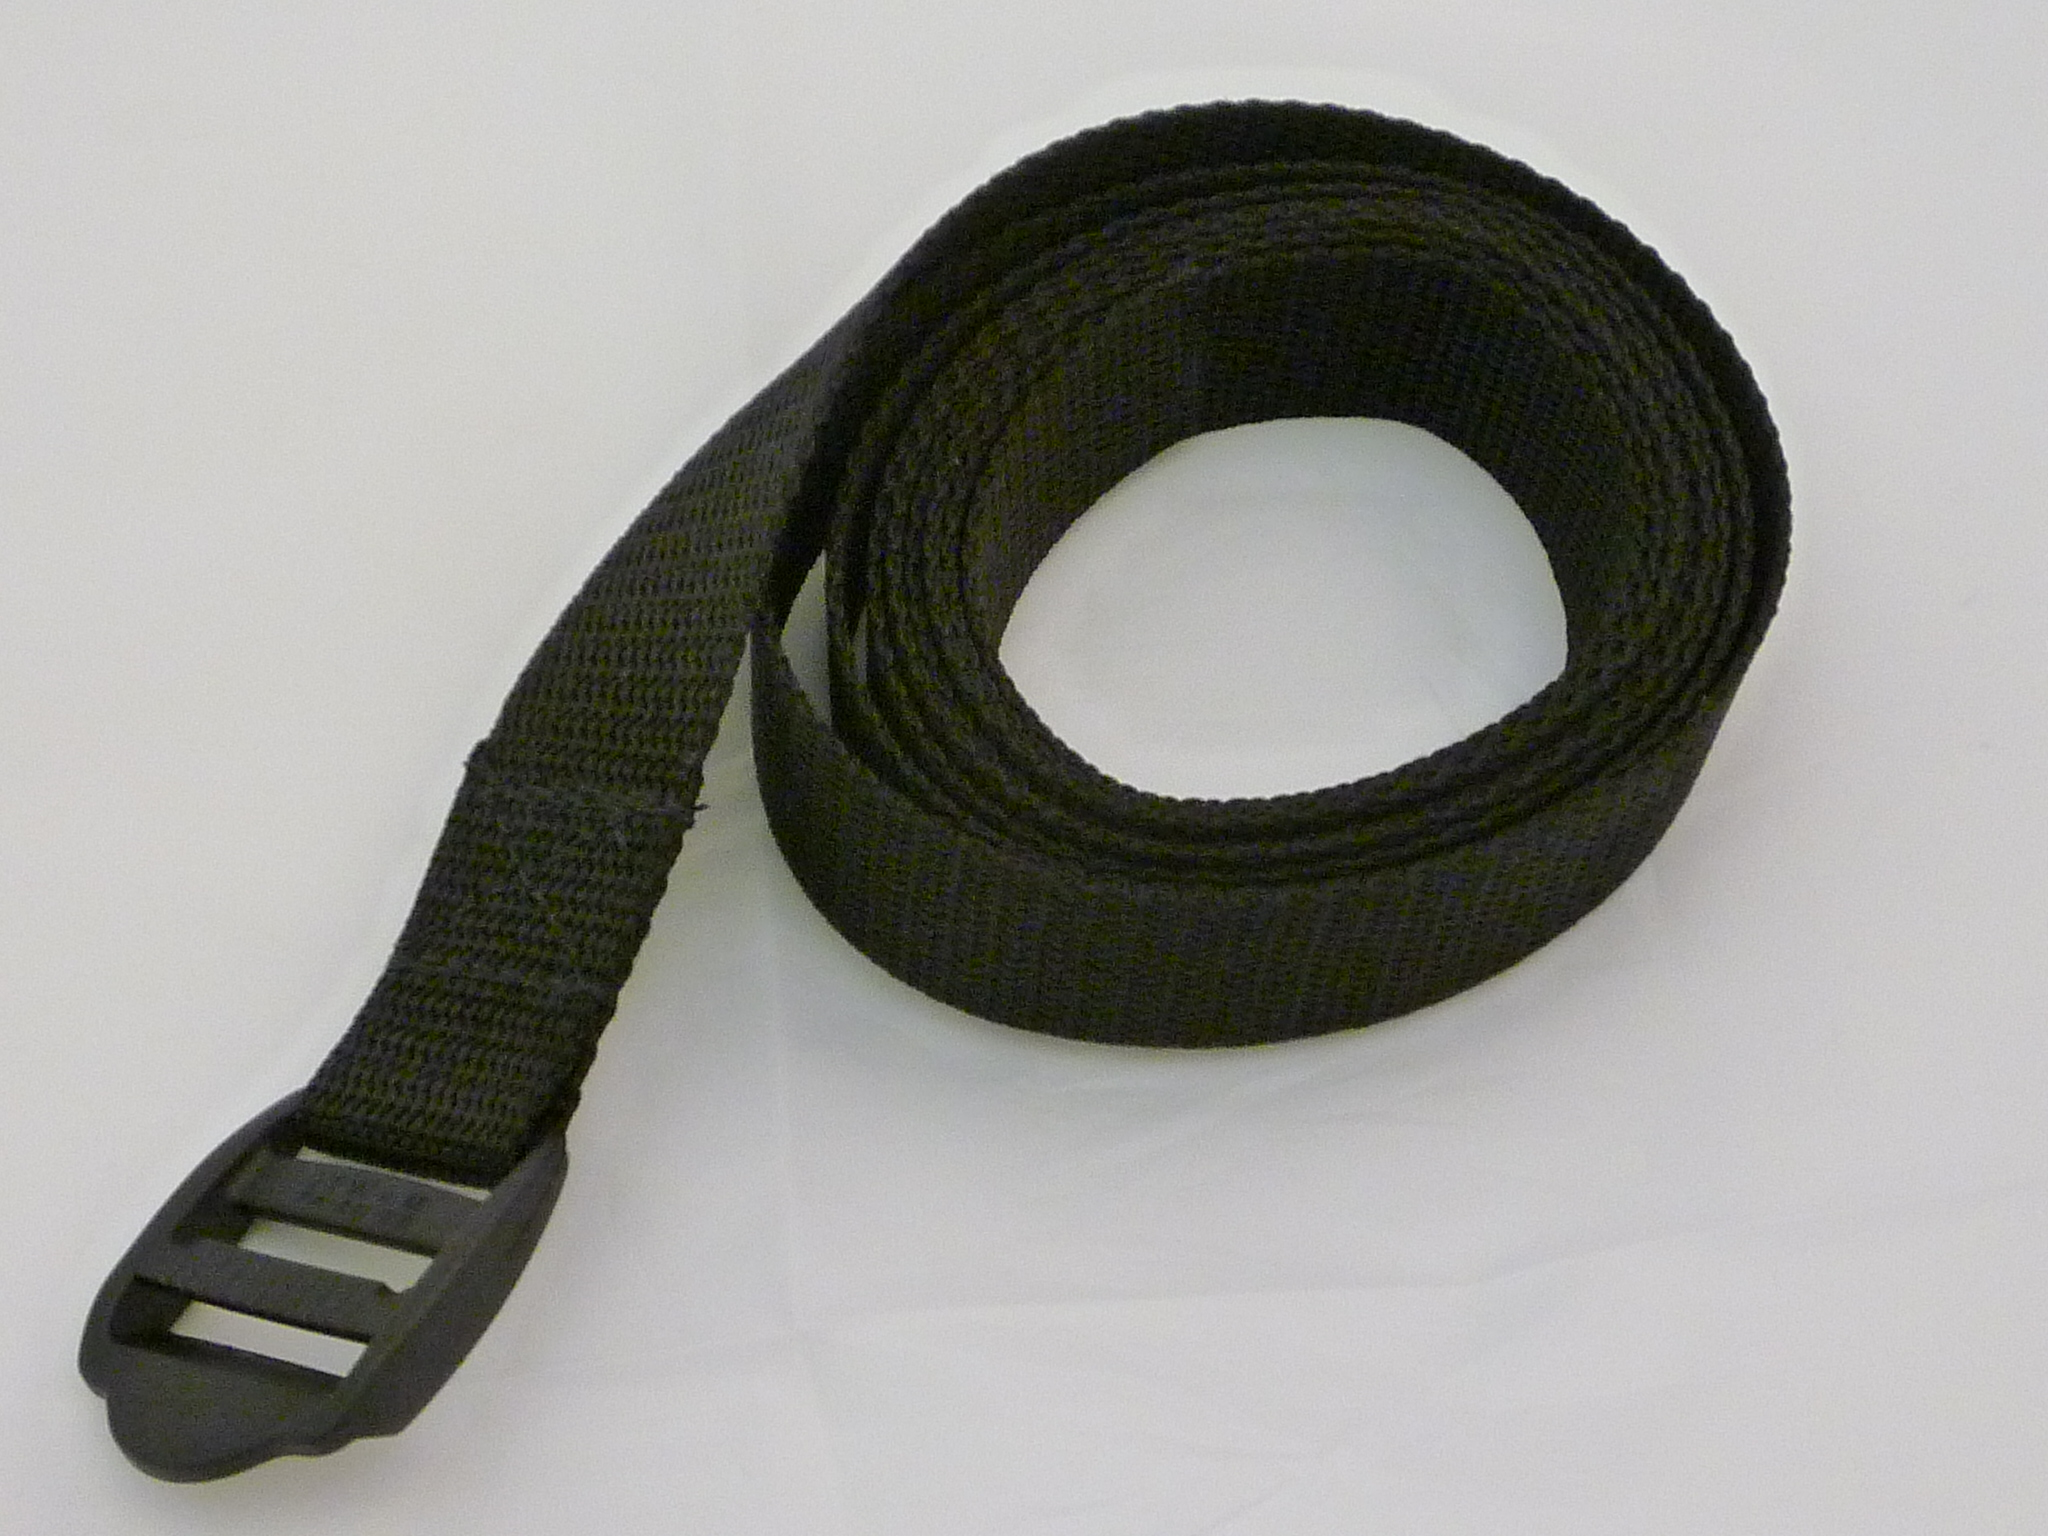 201 Strap with Ladder Lock